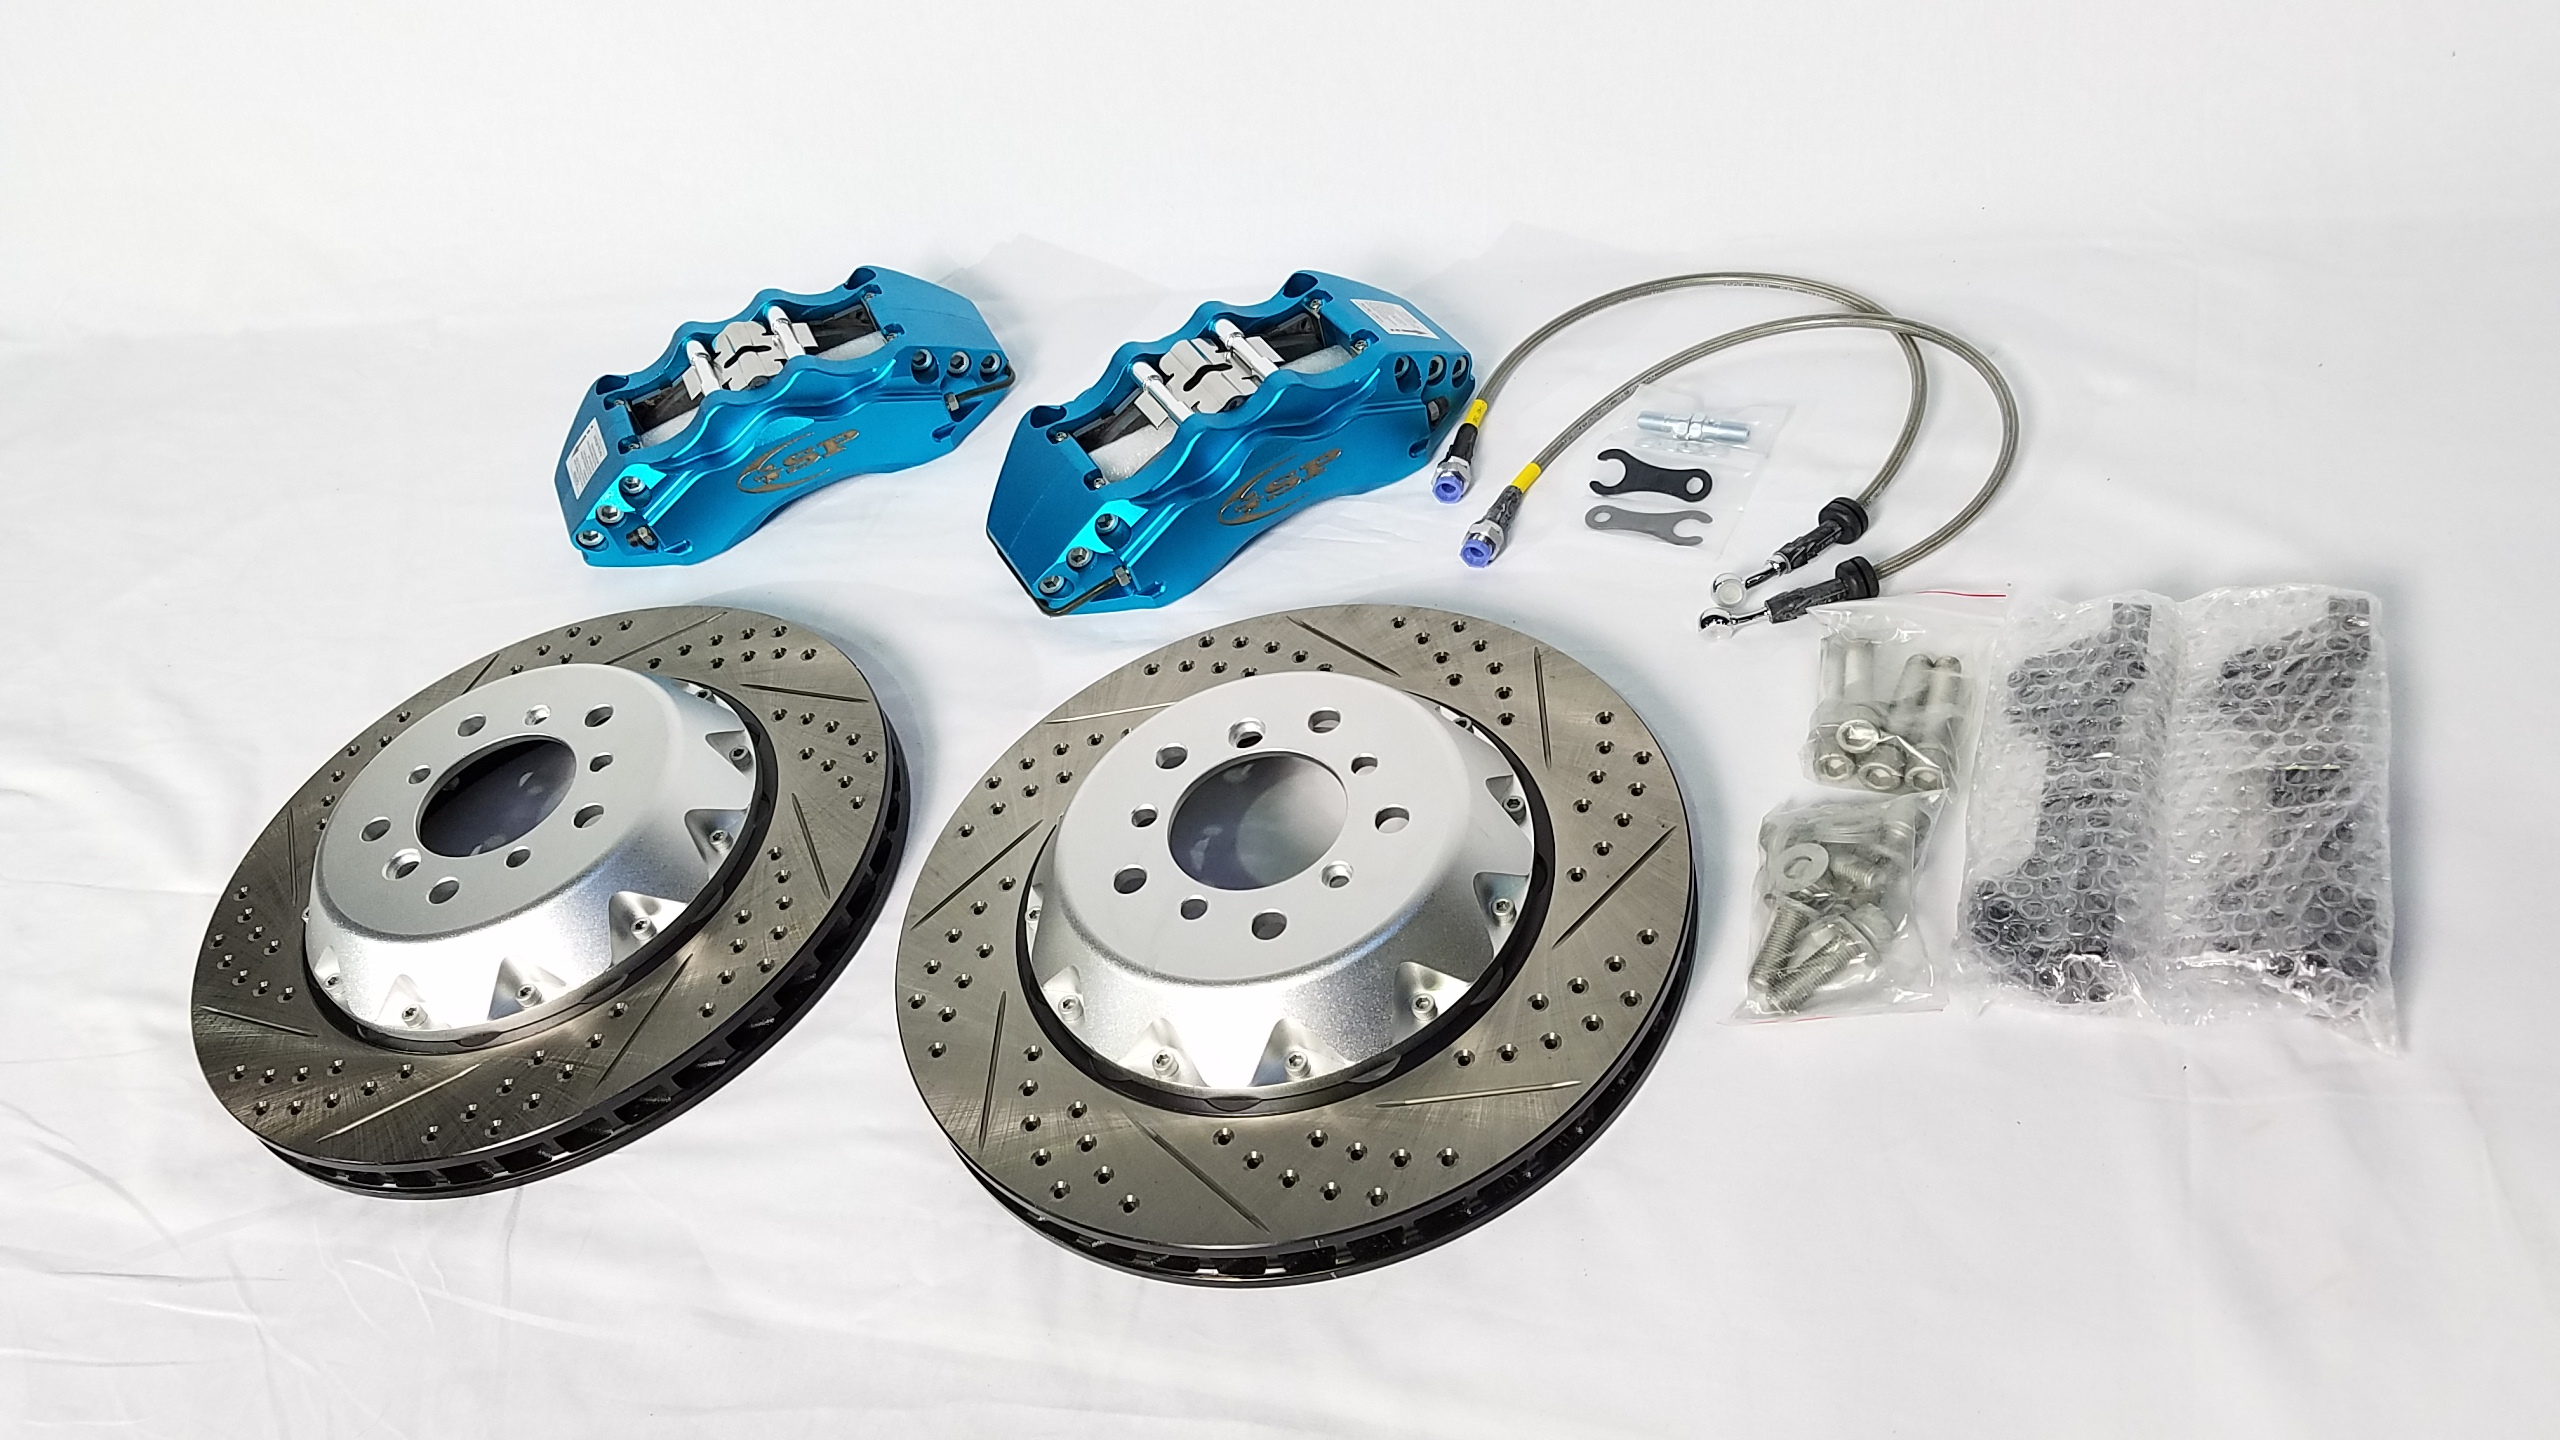 GSP brake system for F30. 356 mm 6 POT big caliper.